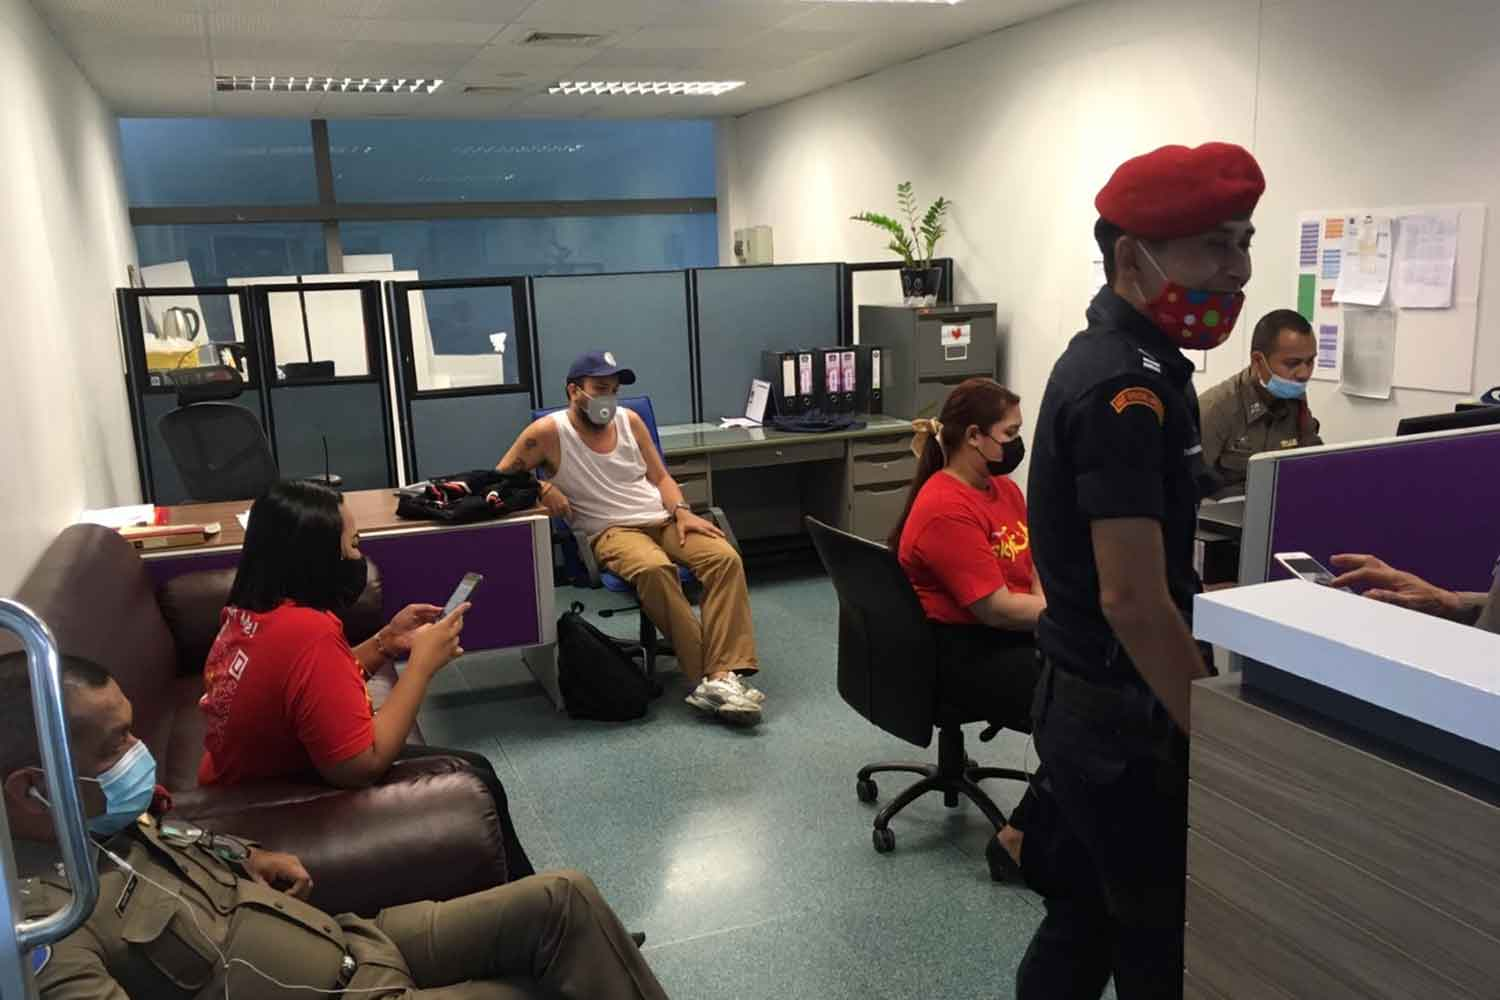 Mike Wims, seated centre, in the Phuket airport security office for questioning by police. (Photo: Achadtaya Chuenniran)